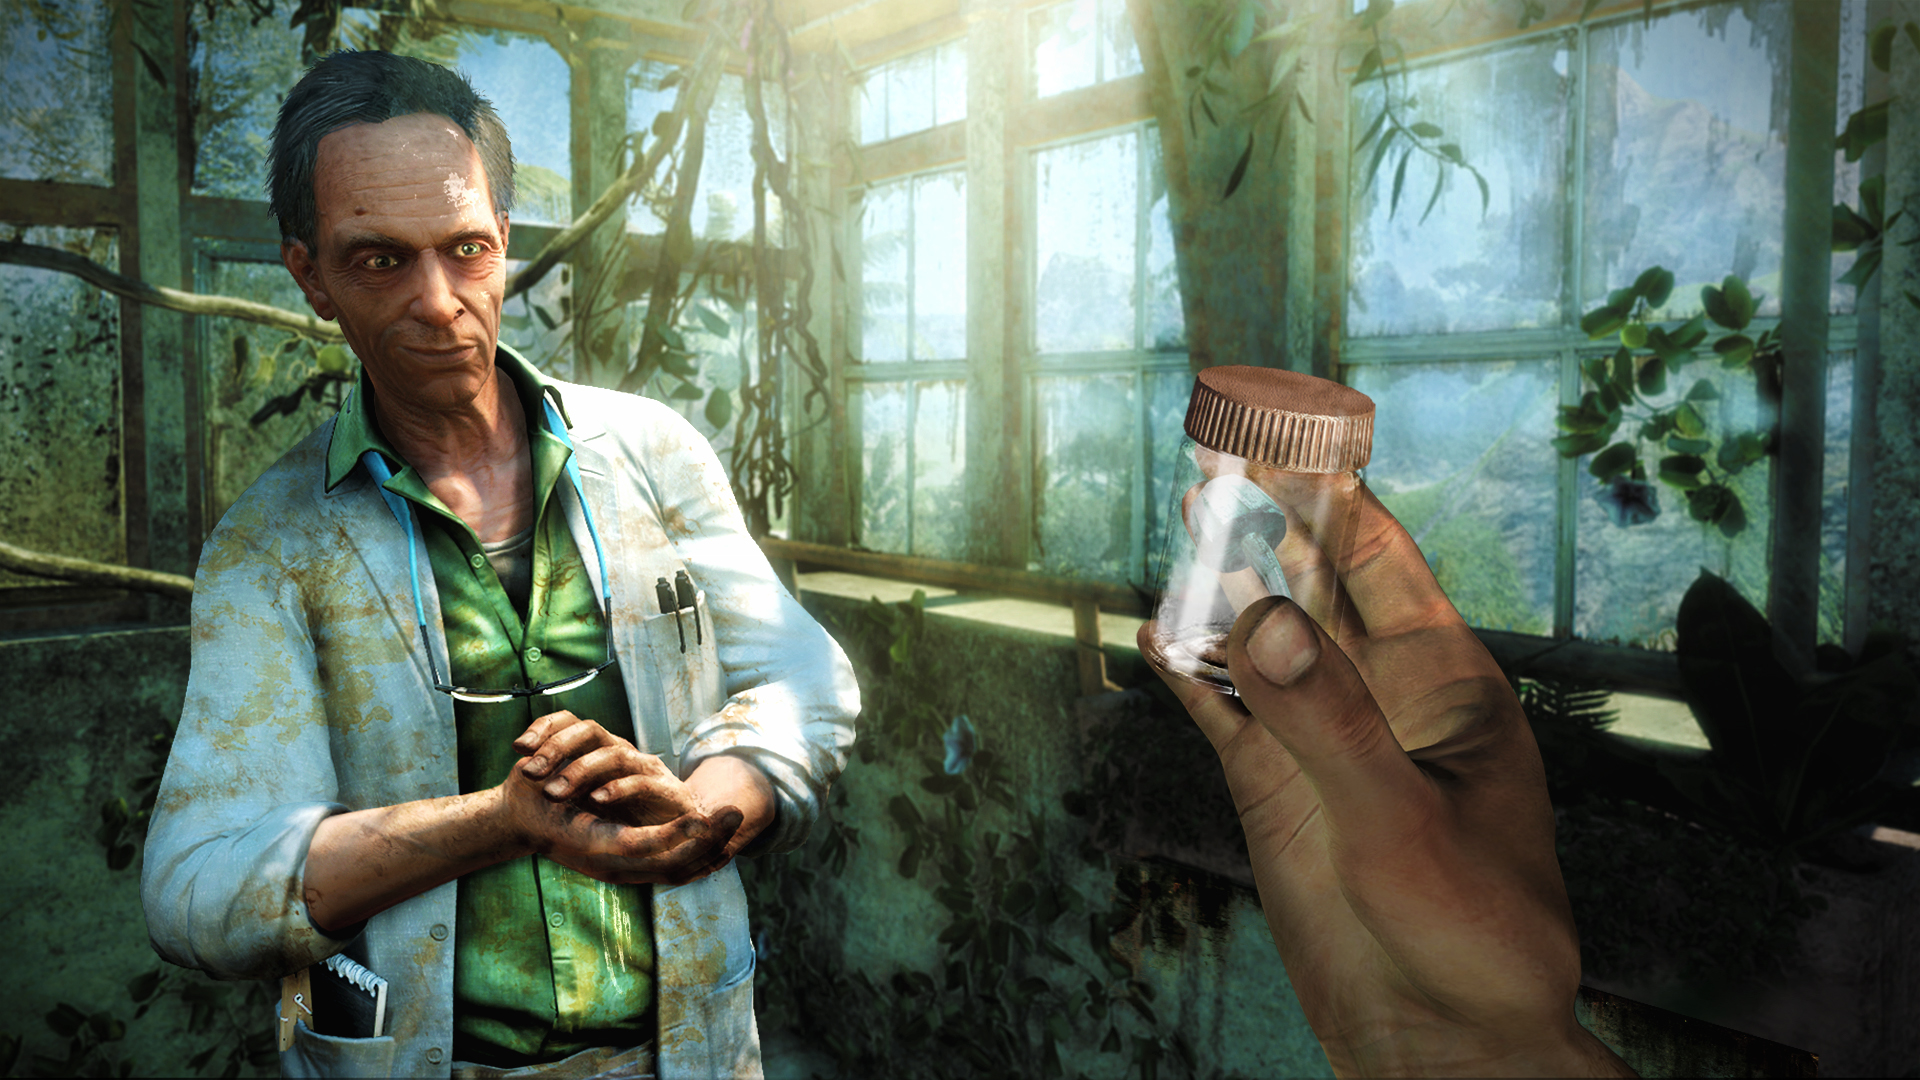 Far Cry 3 Gameplay Trailer Capsule Computers